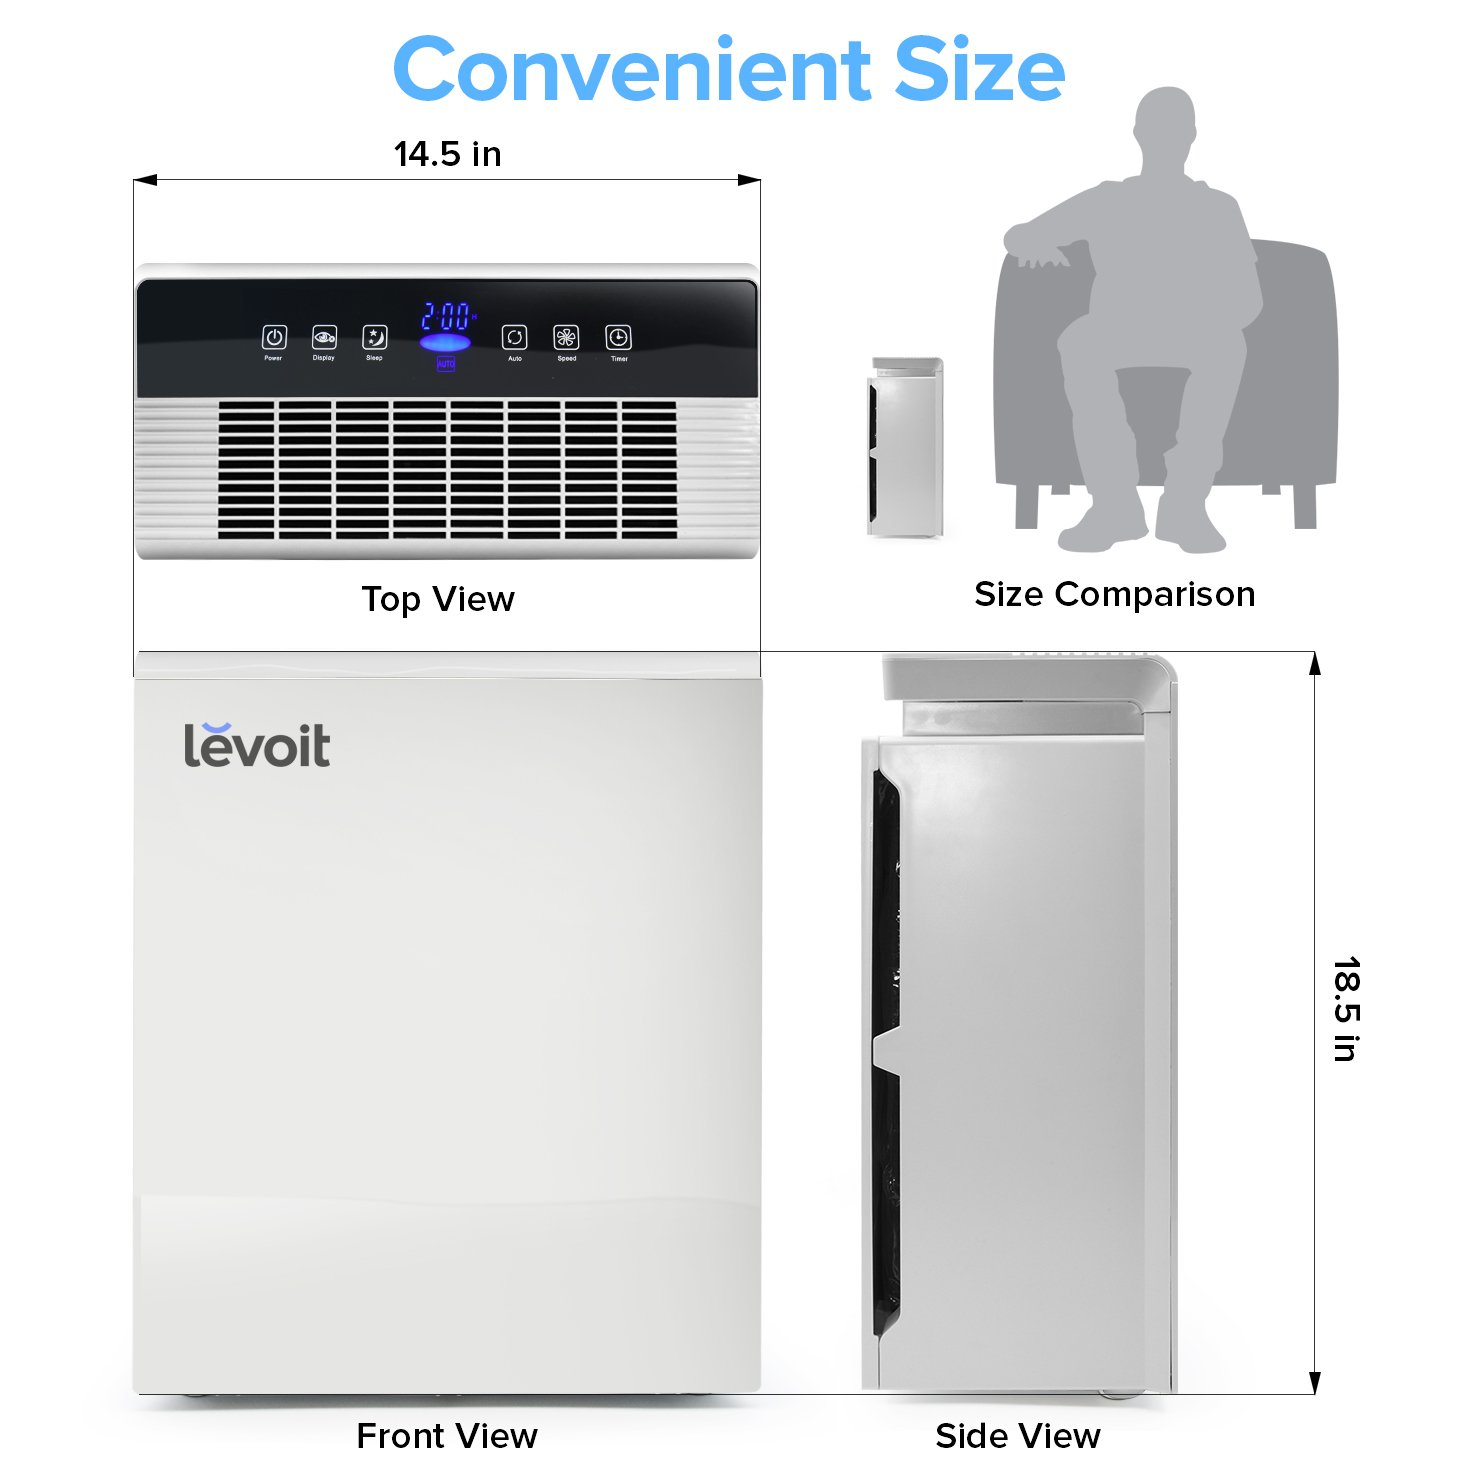 Levoit LV-PUR131 Air Purifier with True HEPA Filter, Odor Allergies Eliminator, Air Cleaner for Large Room, Dust, Smoke, Mold, Pets, Smokers, Home, Auto Air Quality Monitor, 322 sq. ft, US-120V by LEVOIT (Image #6)